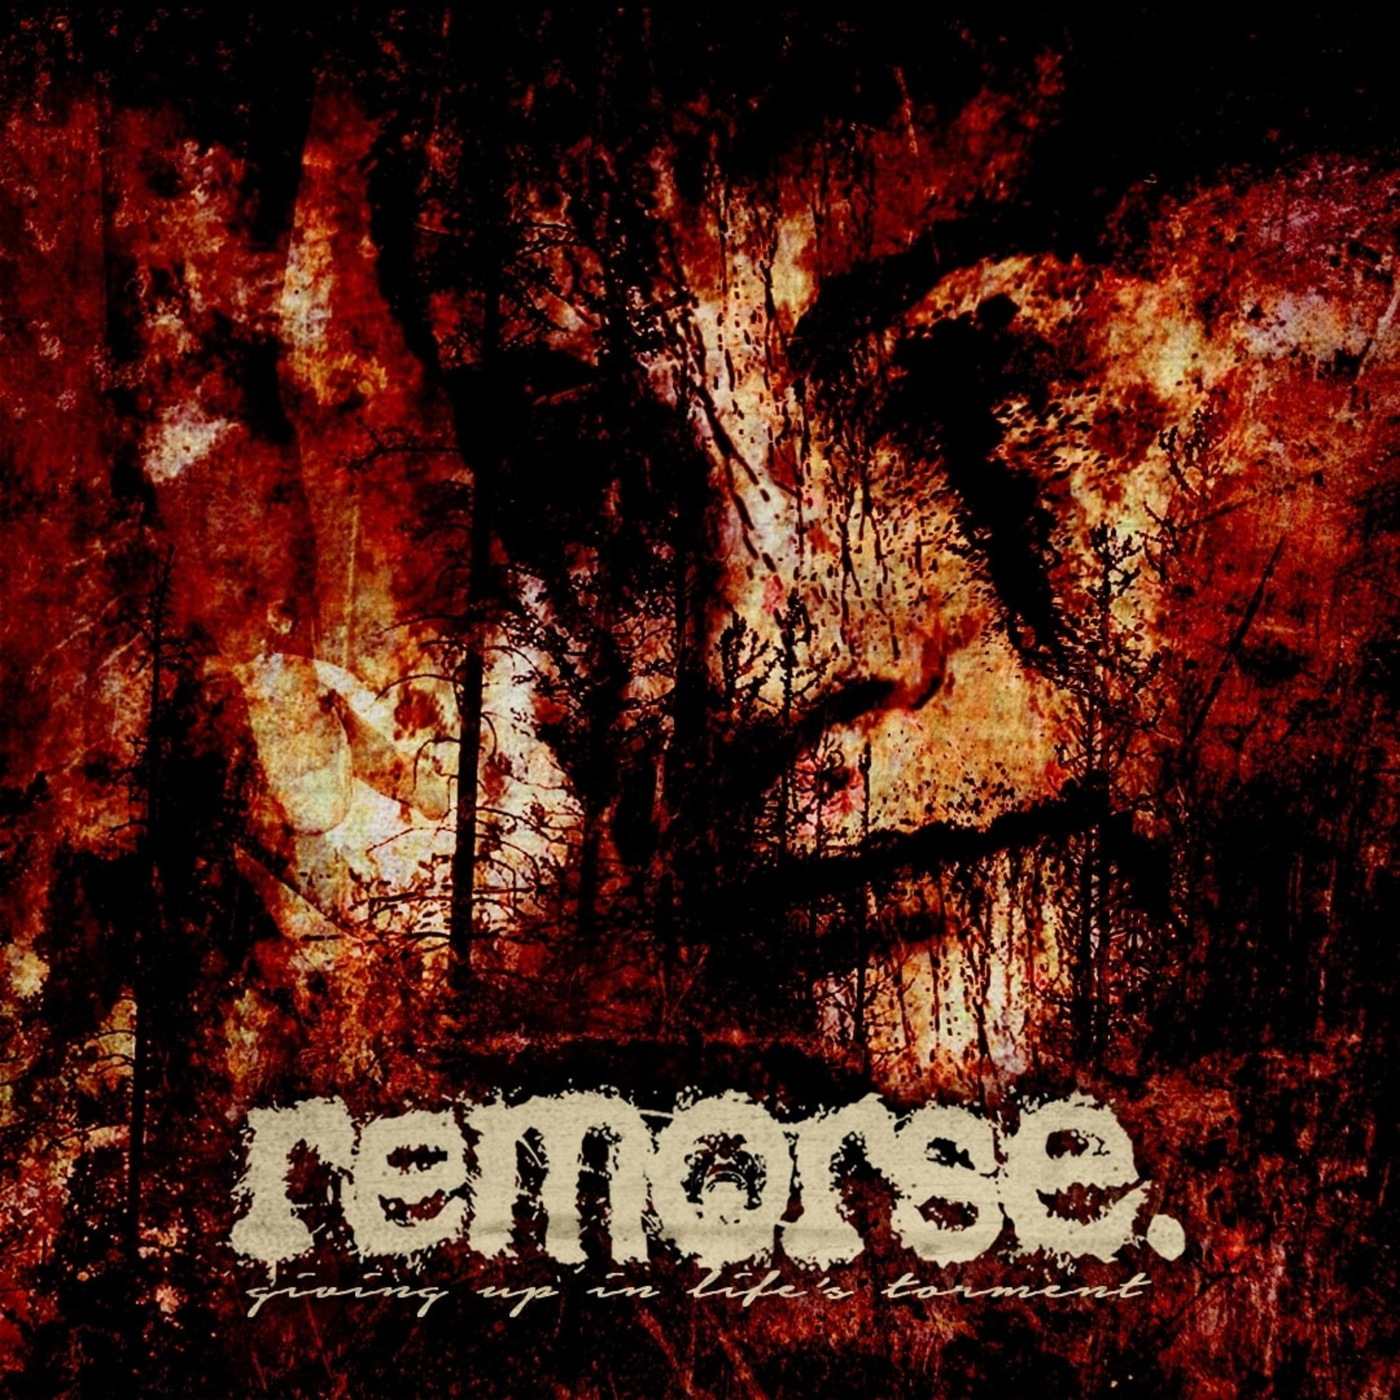 remorse. - Giving Up In Life's Torment [EP] (2019)